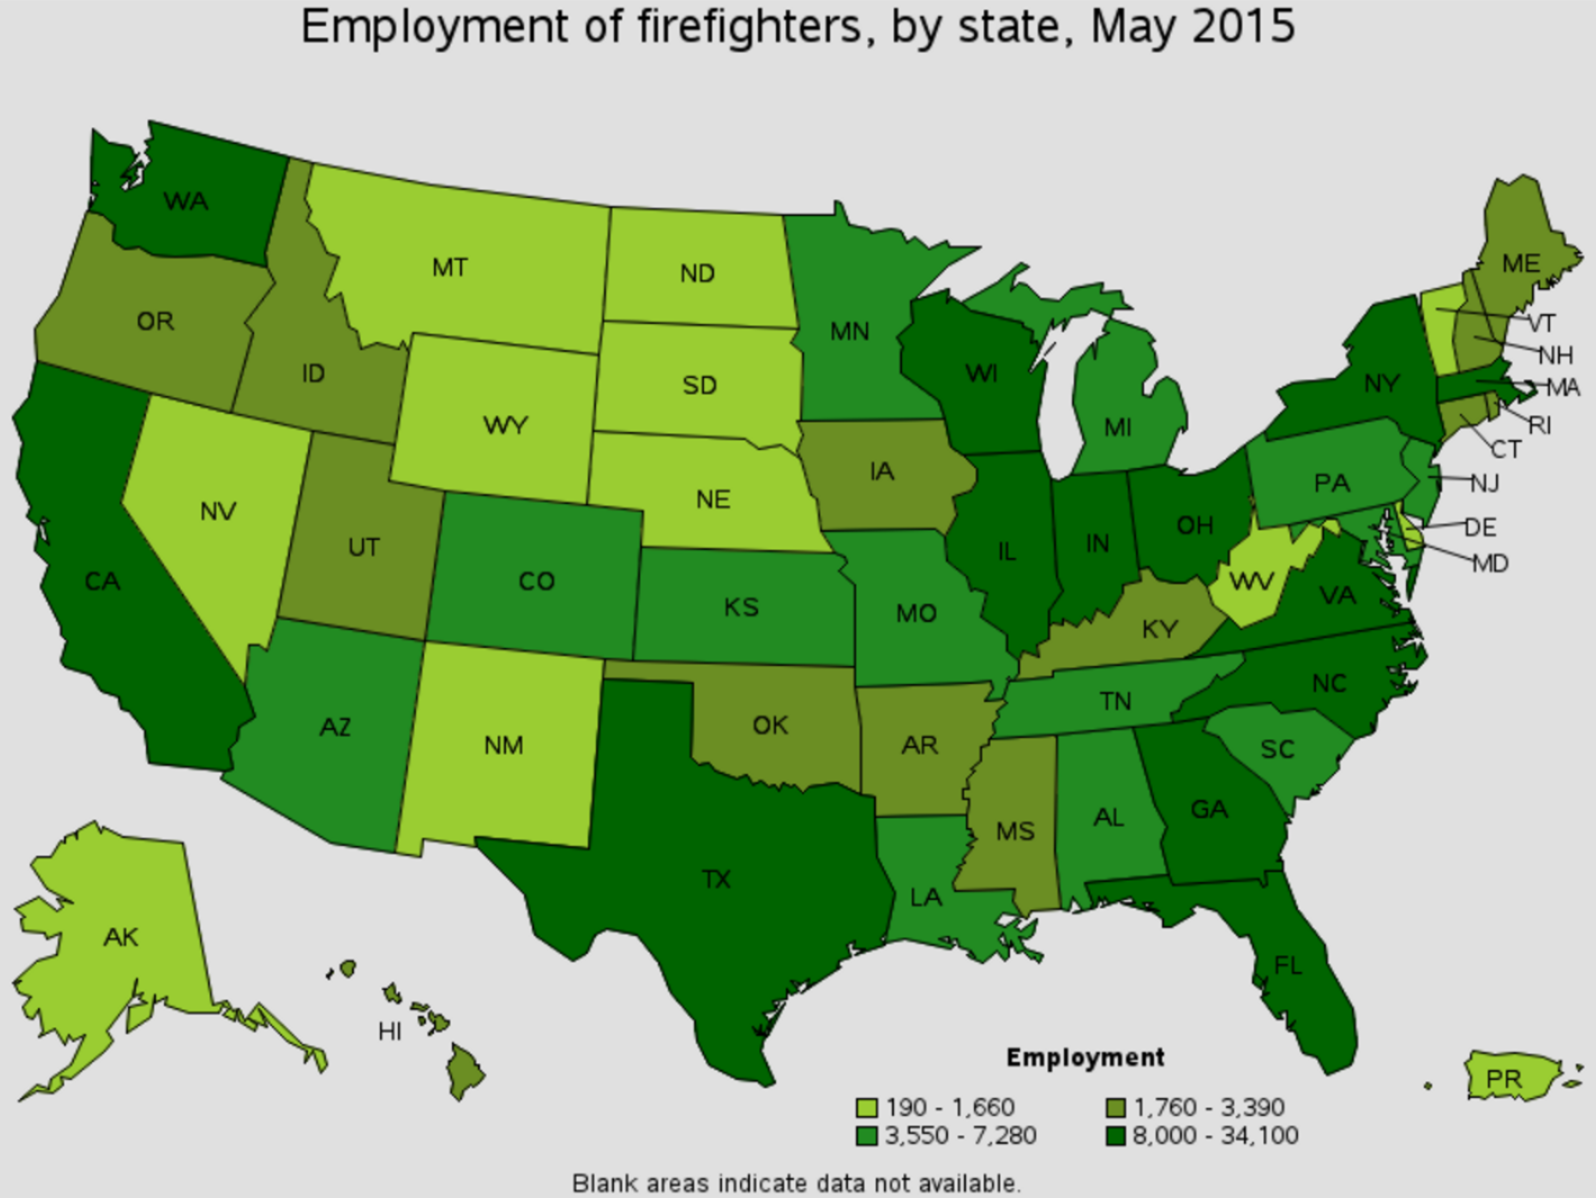 firefighter job outlook by state West Greenwich Rhode Island